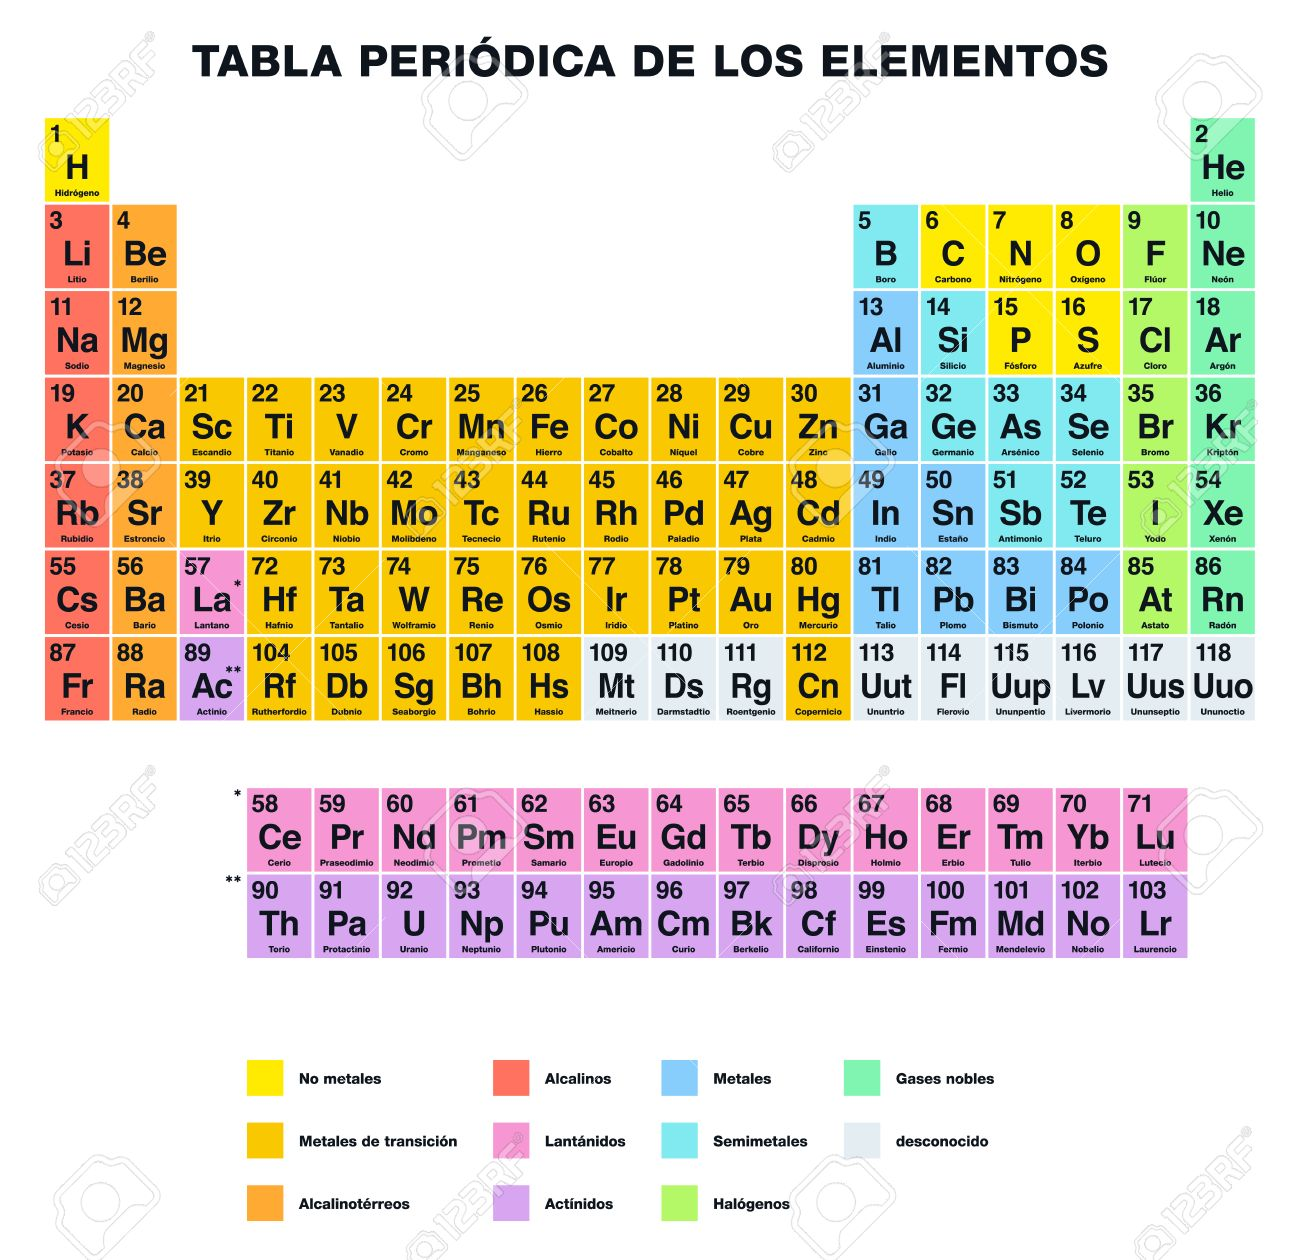 Periodic table of the elements spanish labeling tabular arrangement periodic table of the elements spanish labeling tabular arrangement of chemical elements with atomic numbers urtaz Images